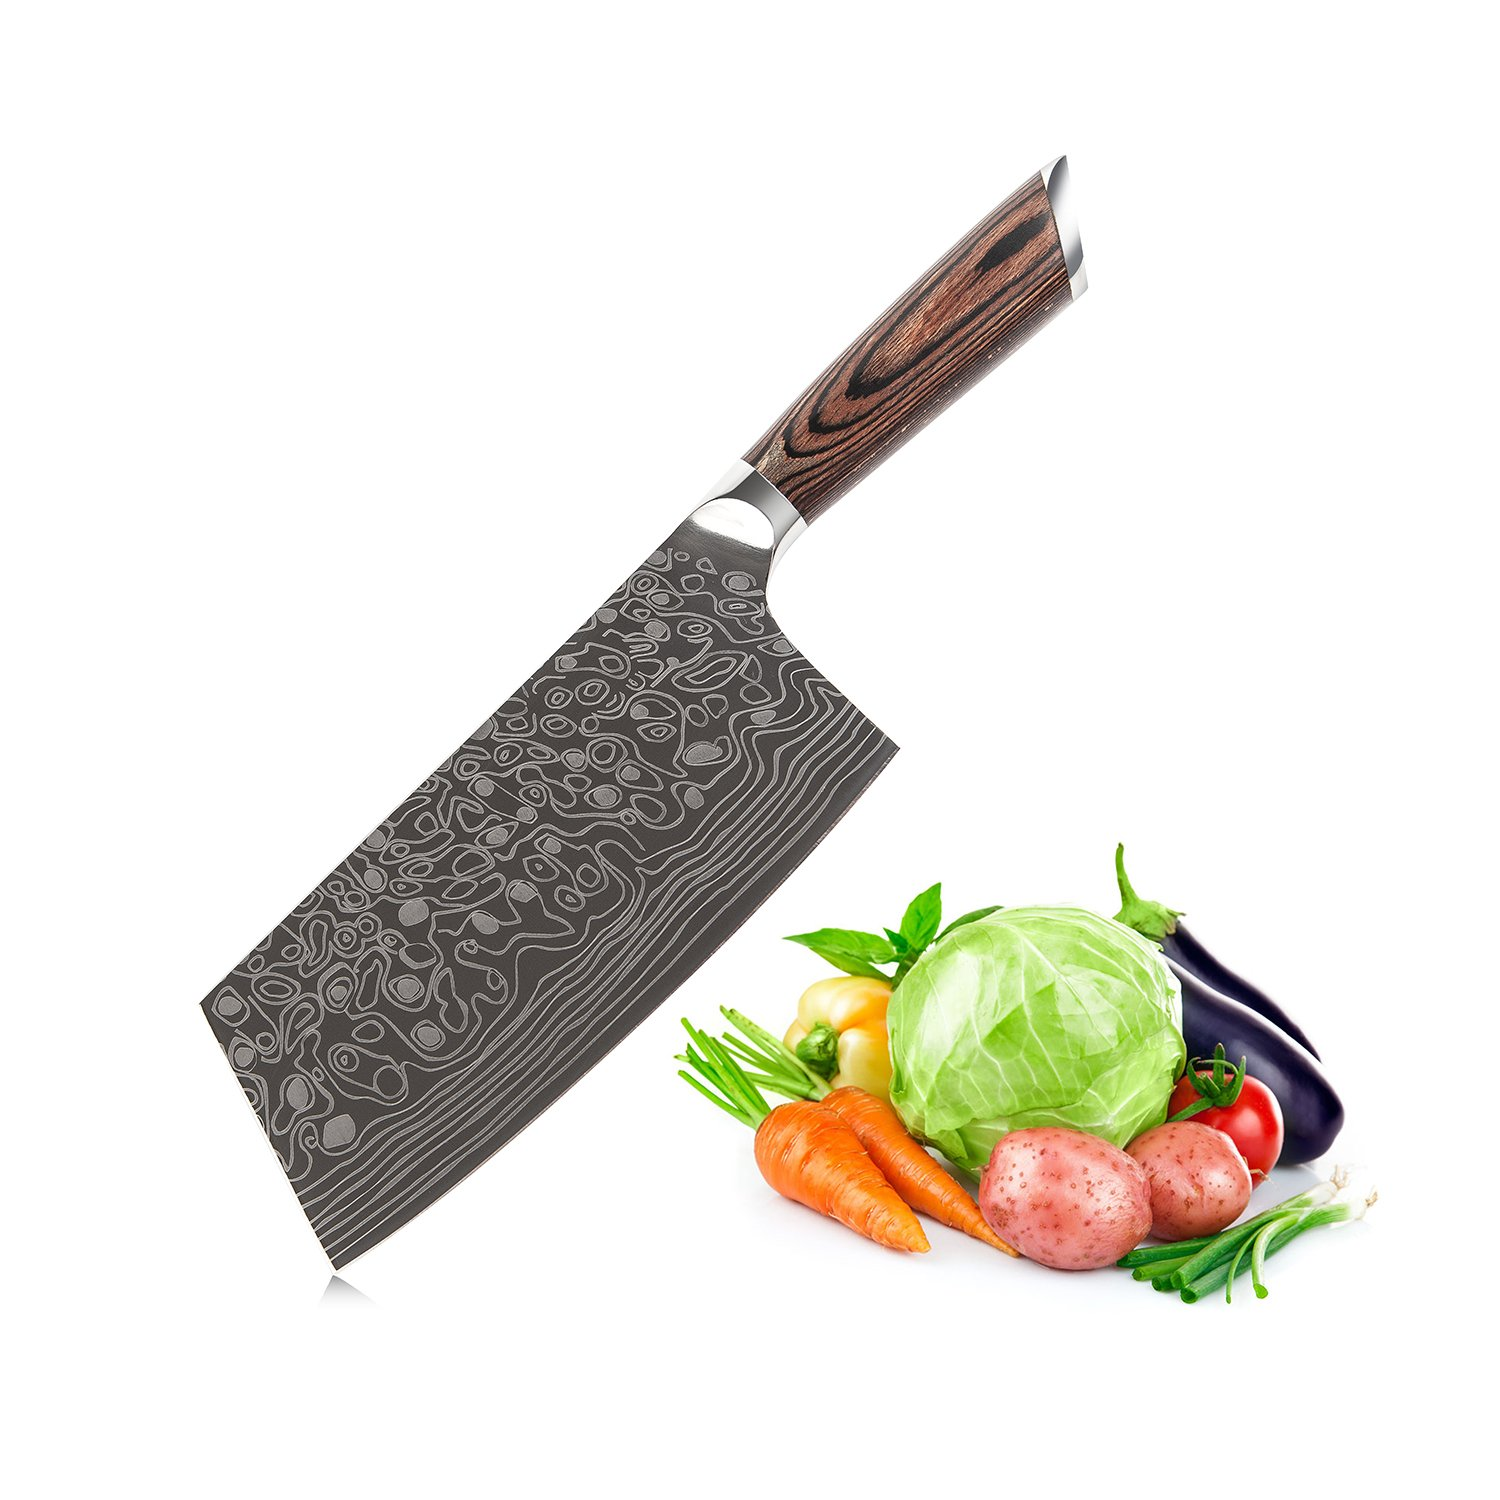 EKUER 7-Inch Chinese Chef's Meat Chopper Cleaver Butcher Vegetable Knife for Home Kitchen or Restaurant,German High Carbon Stainless Steel by EKUER